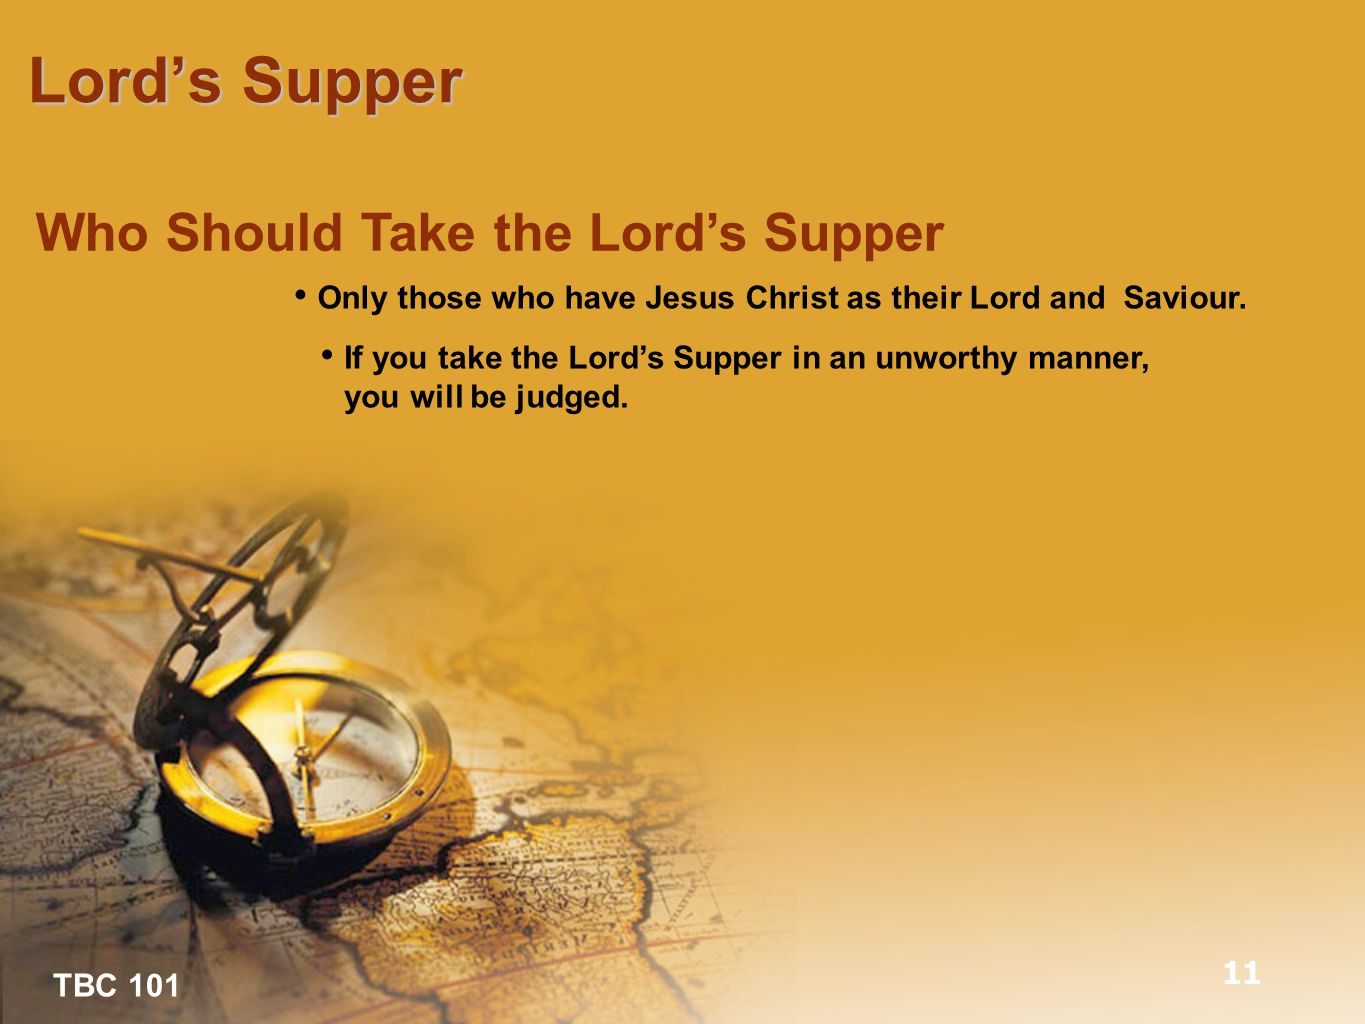 TBC 101 Lord's Supper 11 Who Should Take the Lord's Supper Only those who have Jesus Christ as their Lord and Saviour.